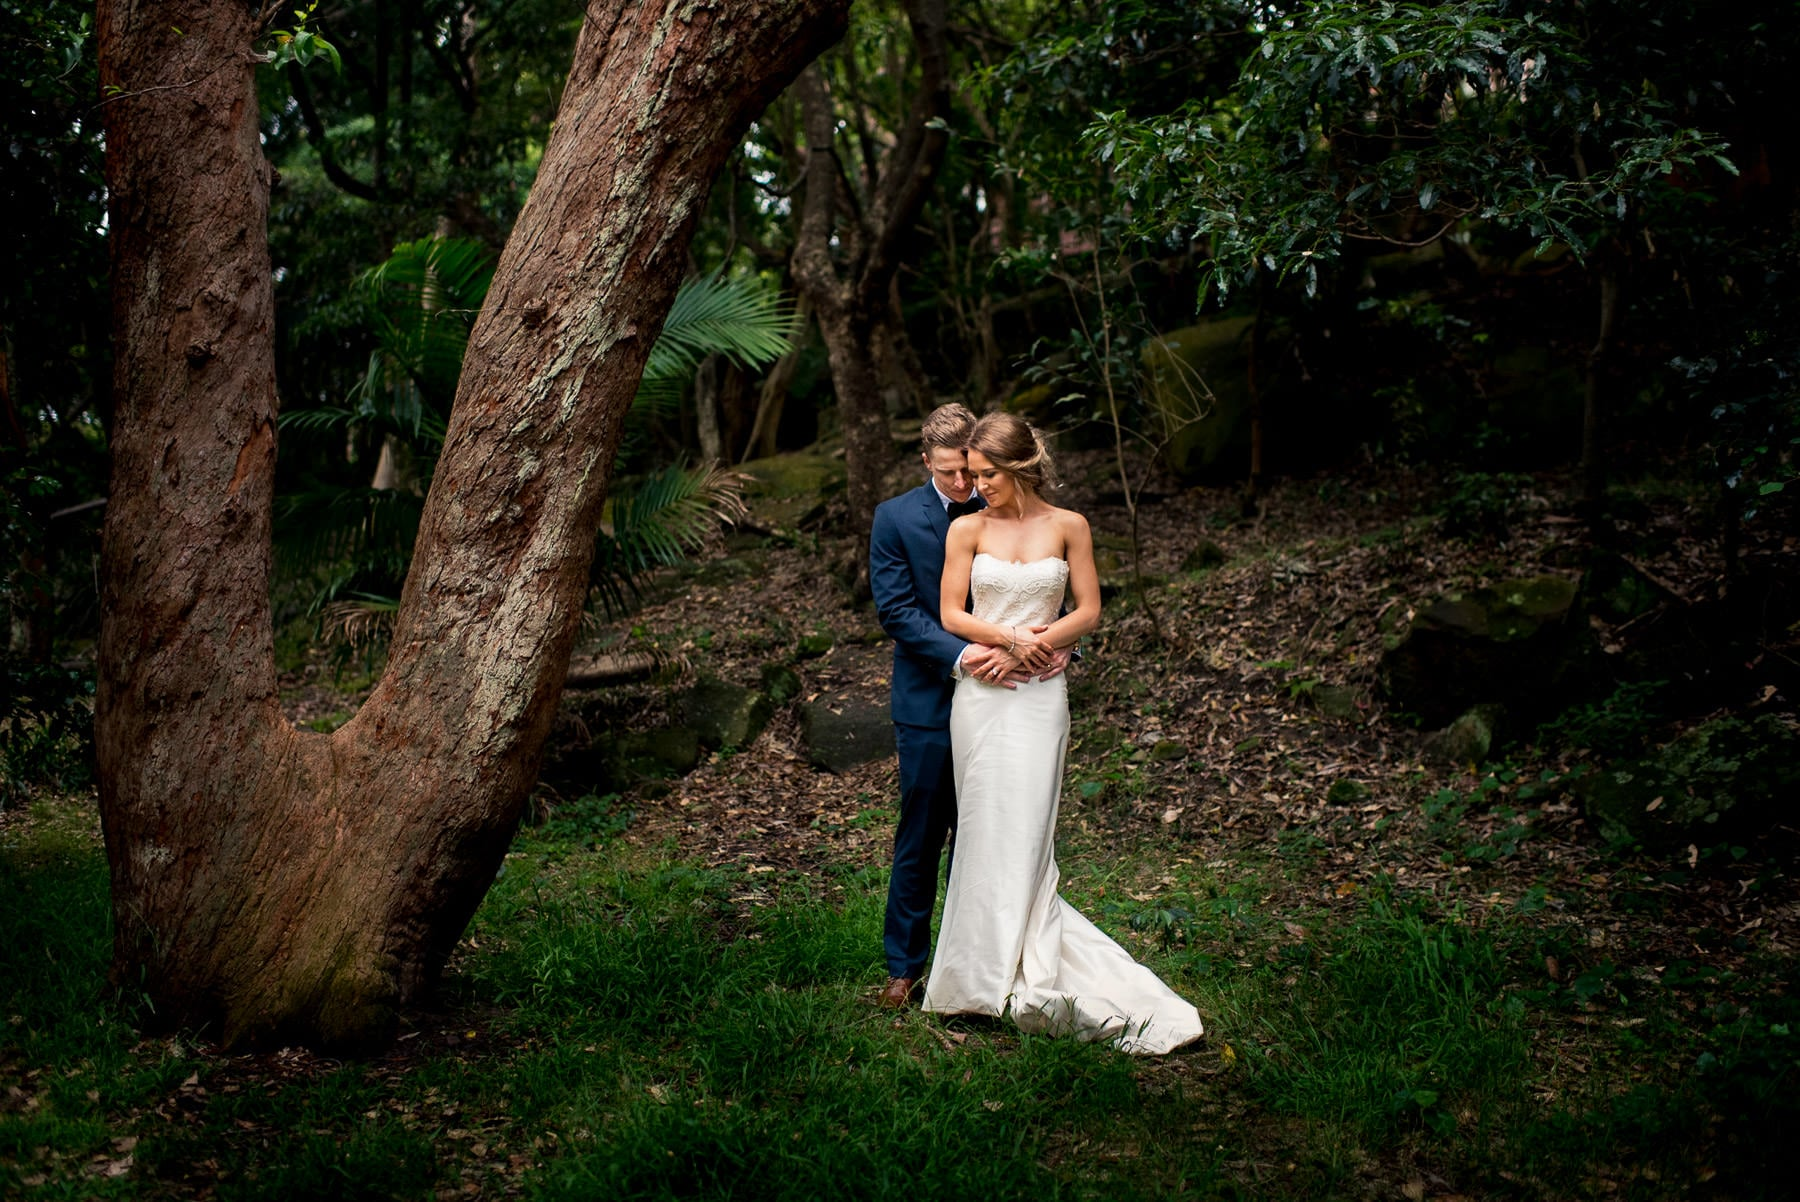 Bride and groom hold each other under tree in Parsley Bay after wedding ceremony